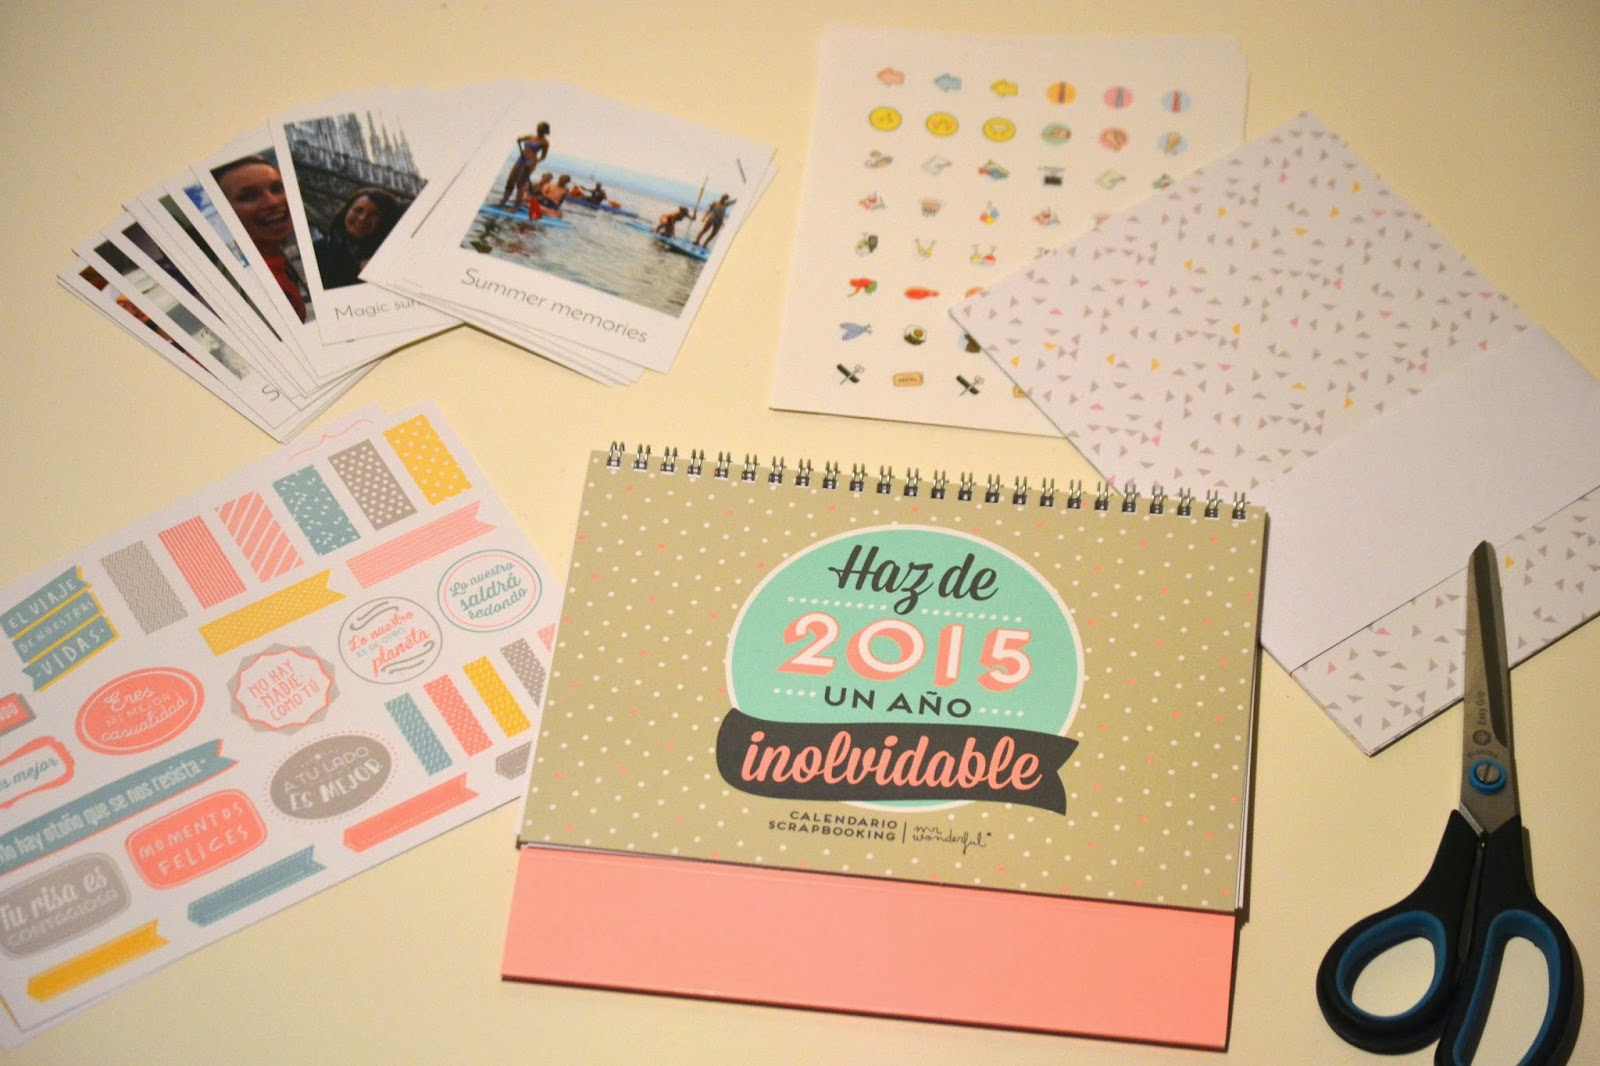 calendario scrapbook de Mr Wonderful y fotos Polabox